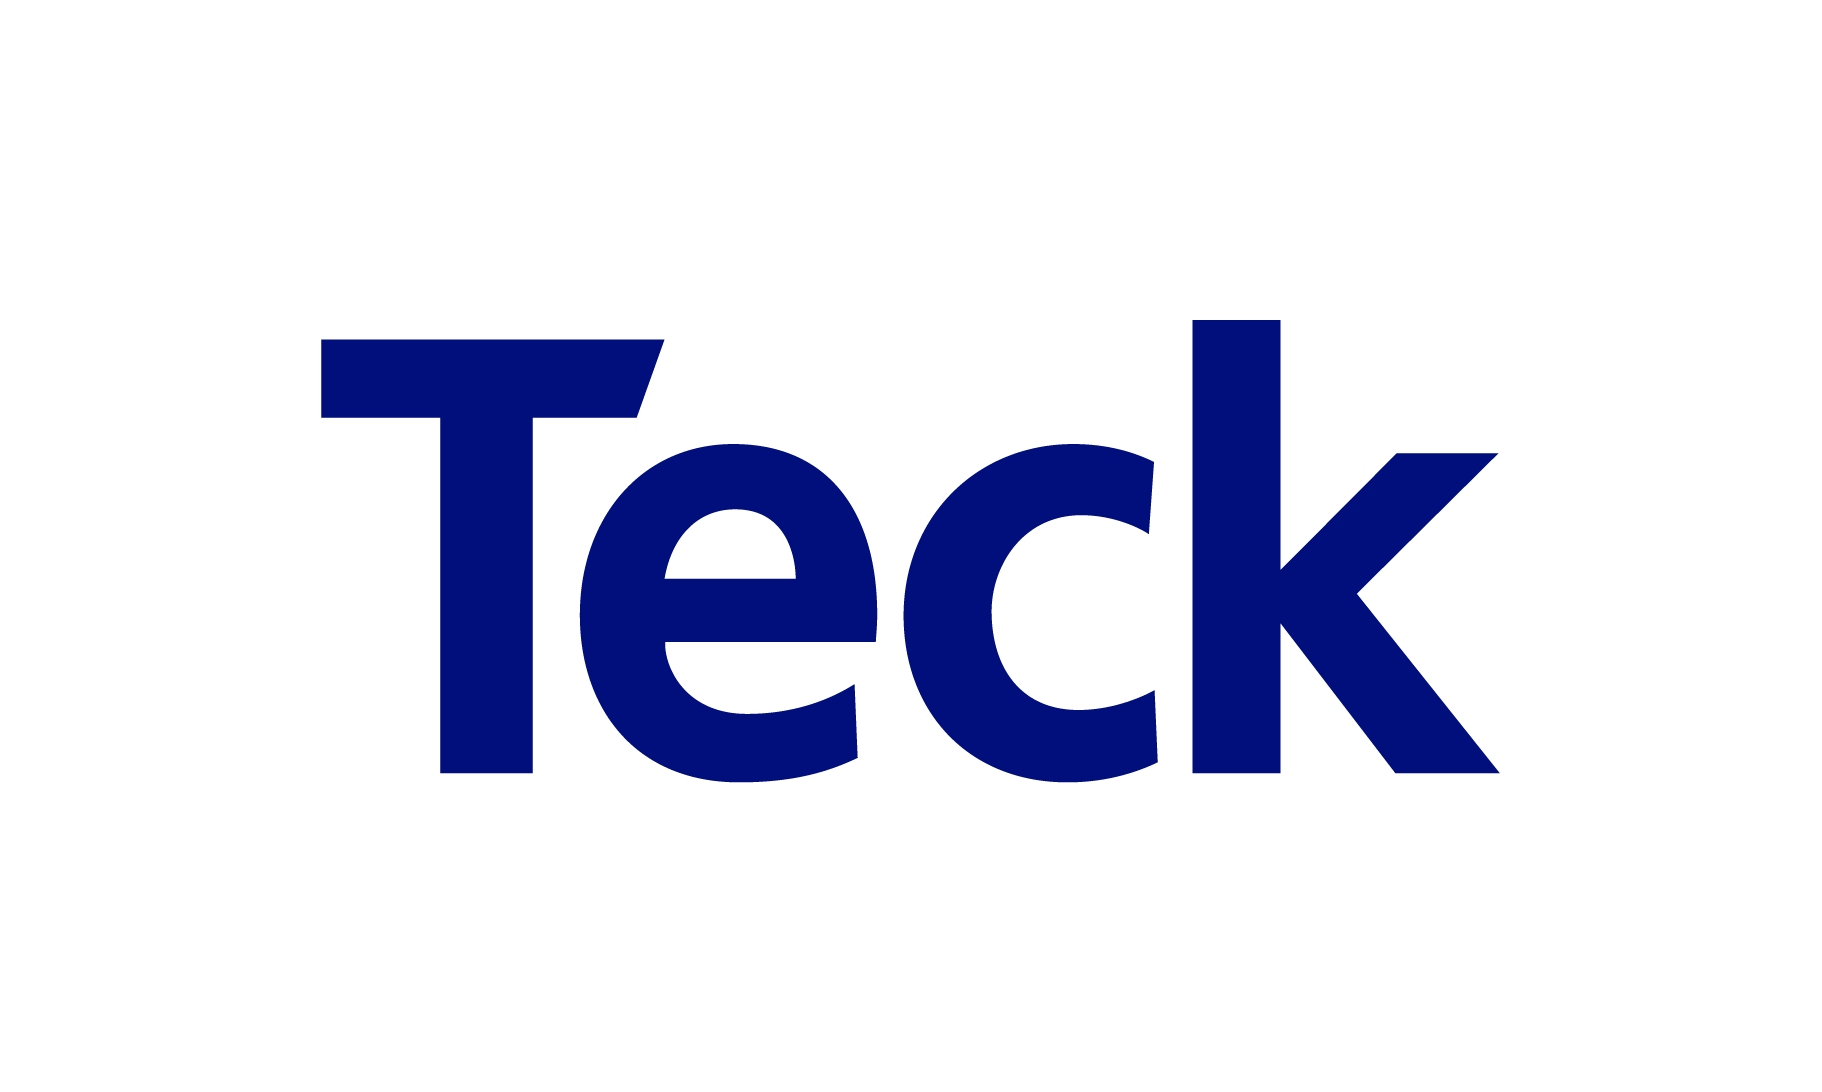 Teck Donates $10 million to Support the New St